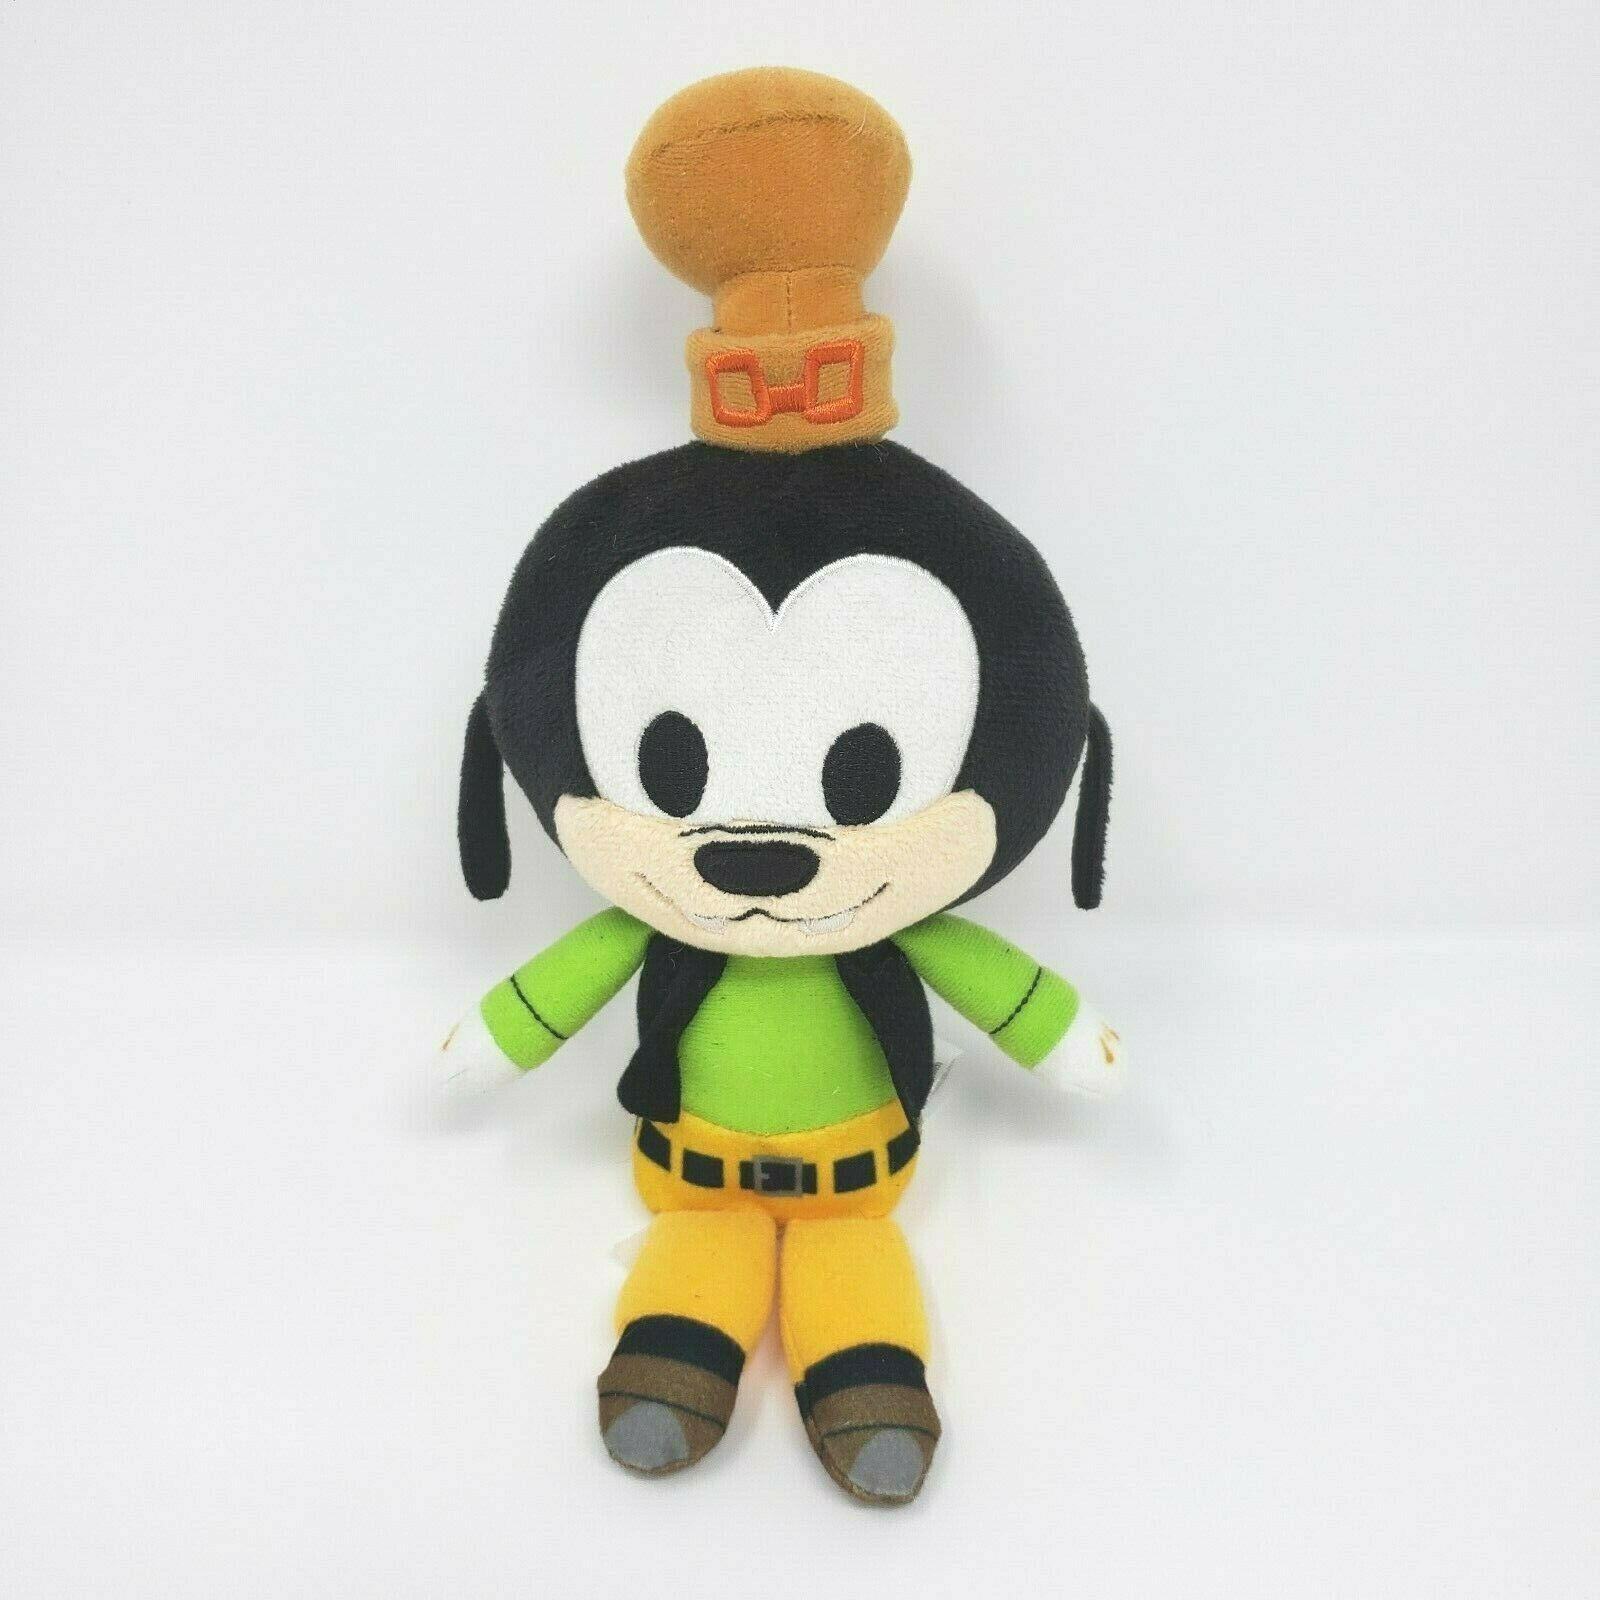 "Primary image for 9"" DISNEY KINGDOM HEARTS GOOFY YELLOW HAT FUNKO STUFFED ANIMAL PLUSH TOY DOLL"